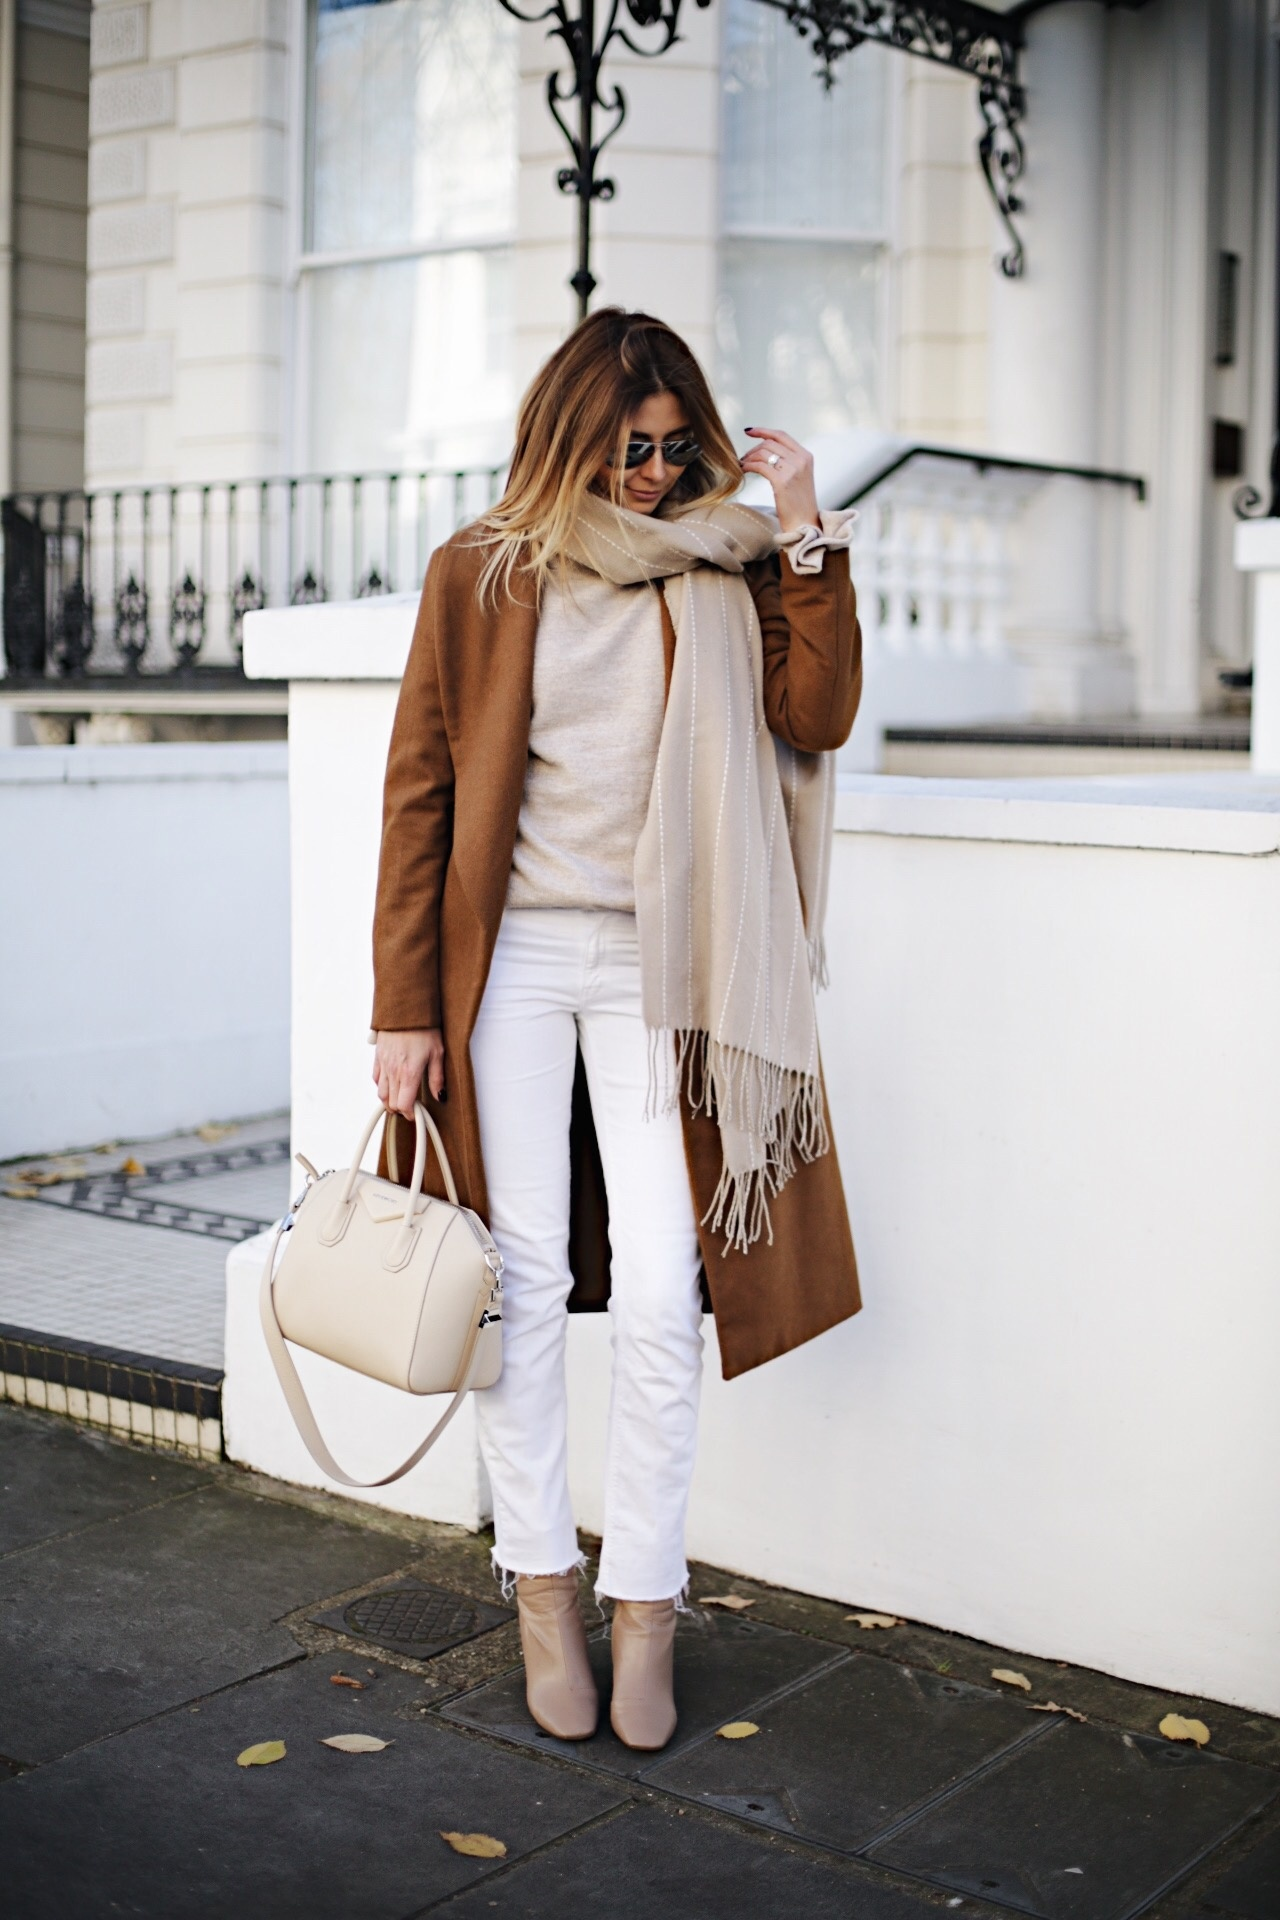 Rust winter coat, white jeans, beige sweater, off white Givenchy Antigona bag small, beige sock boots, chic winter outfit, winter laters